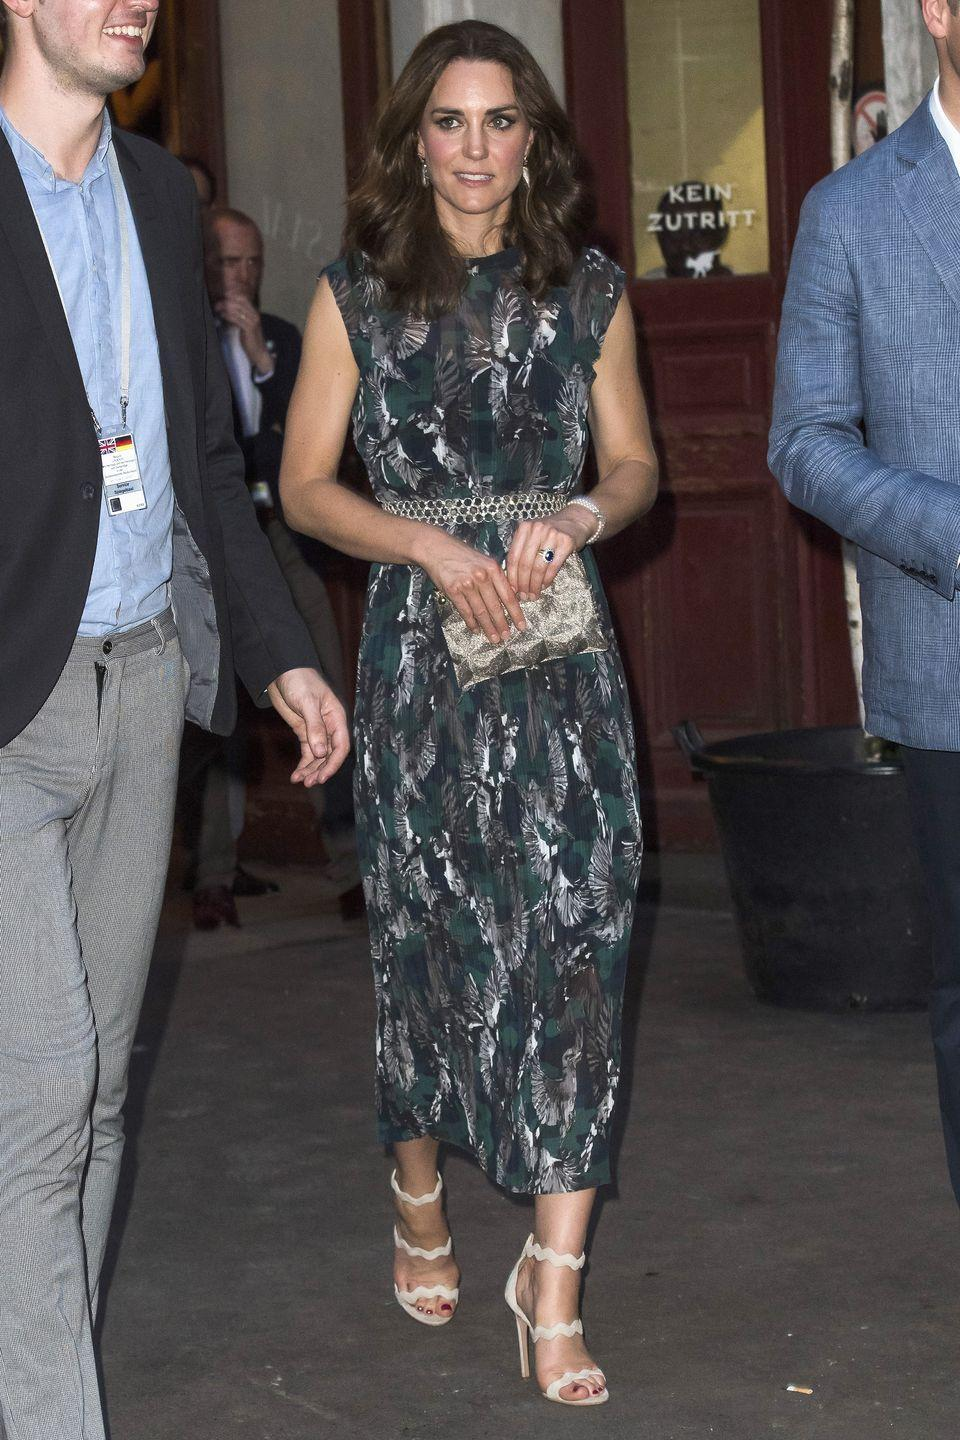 <p>In a Markus Lupfer dress and Prada sandals out on the streets in Germany. </p>